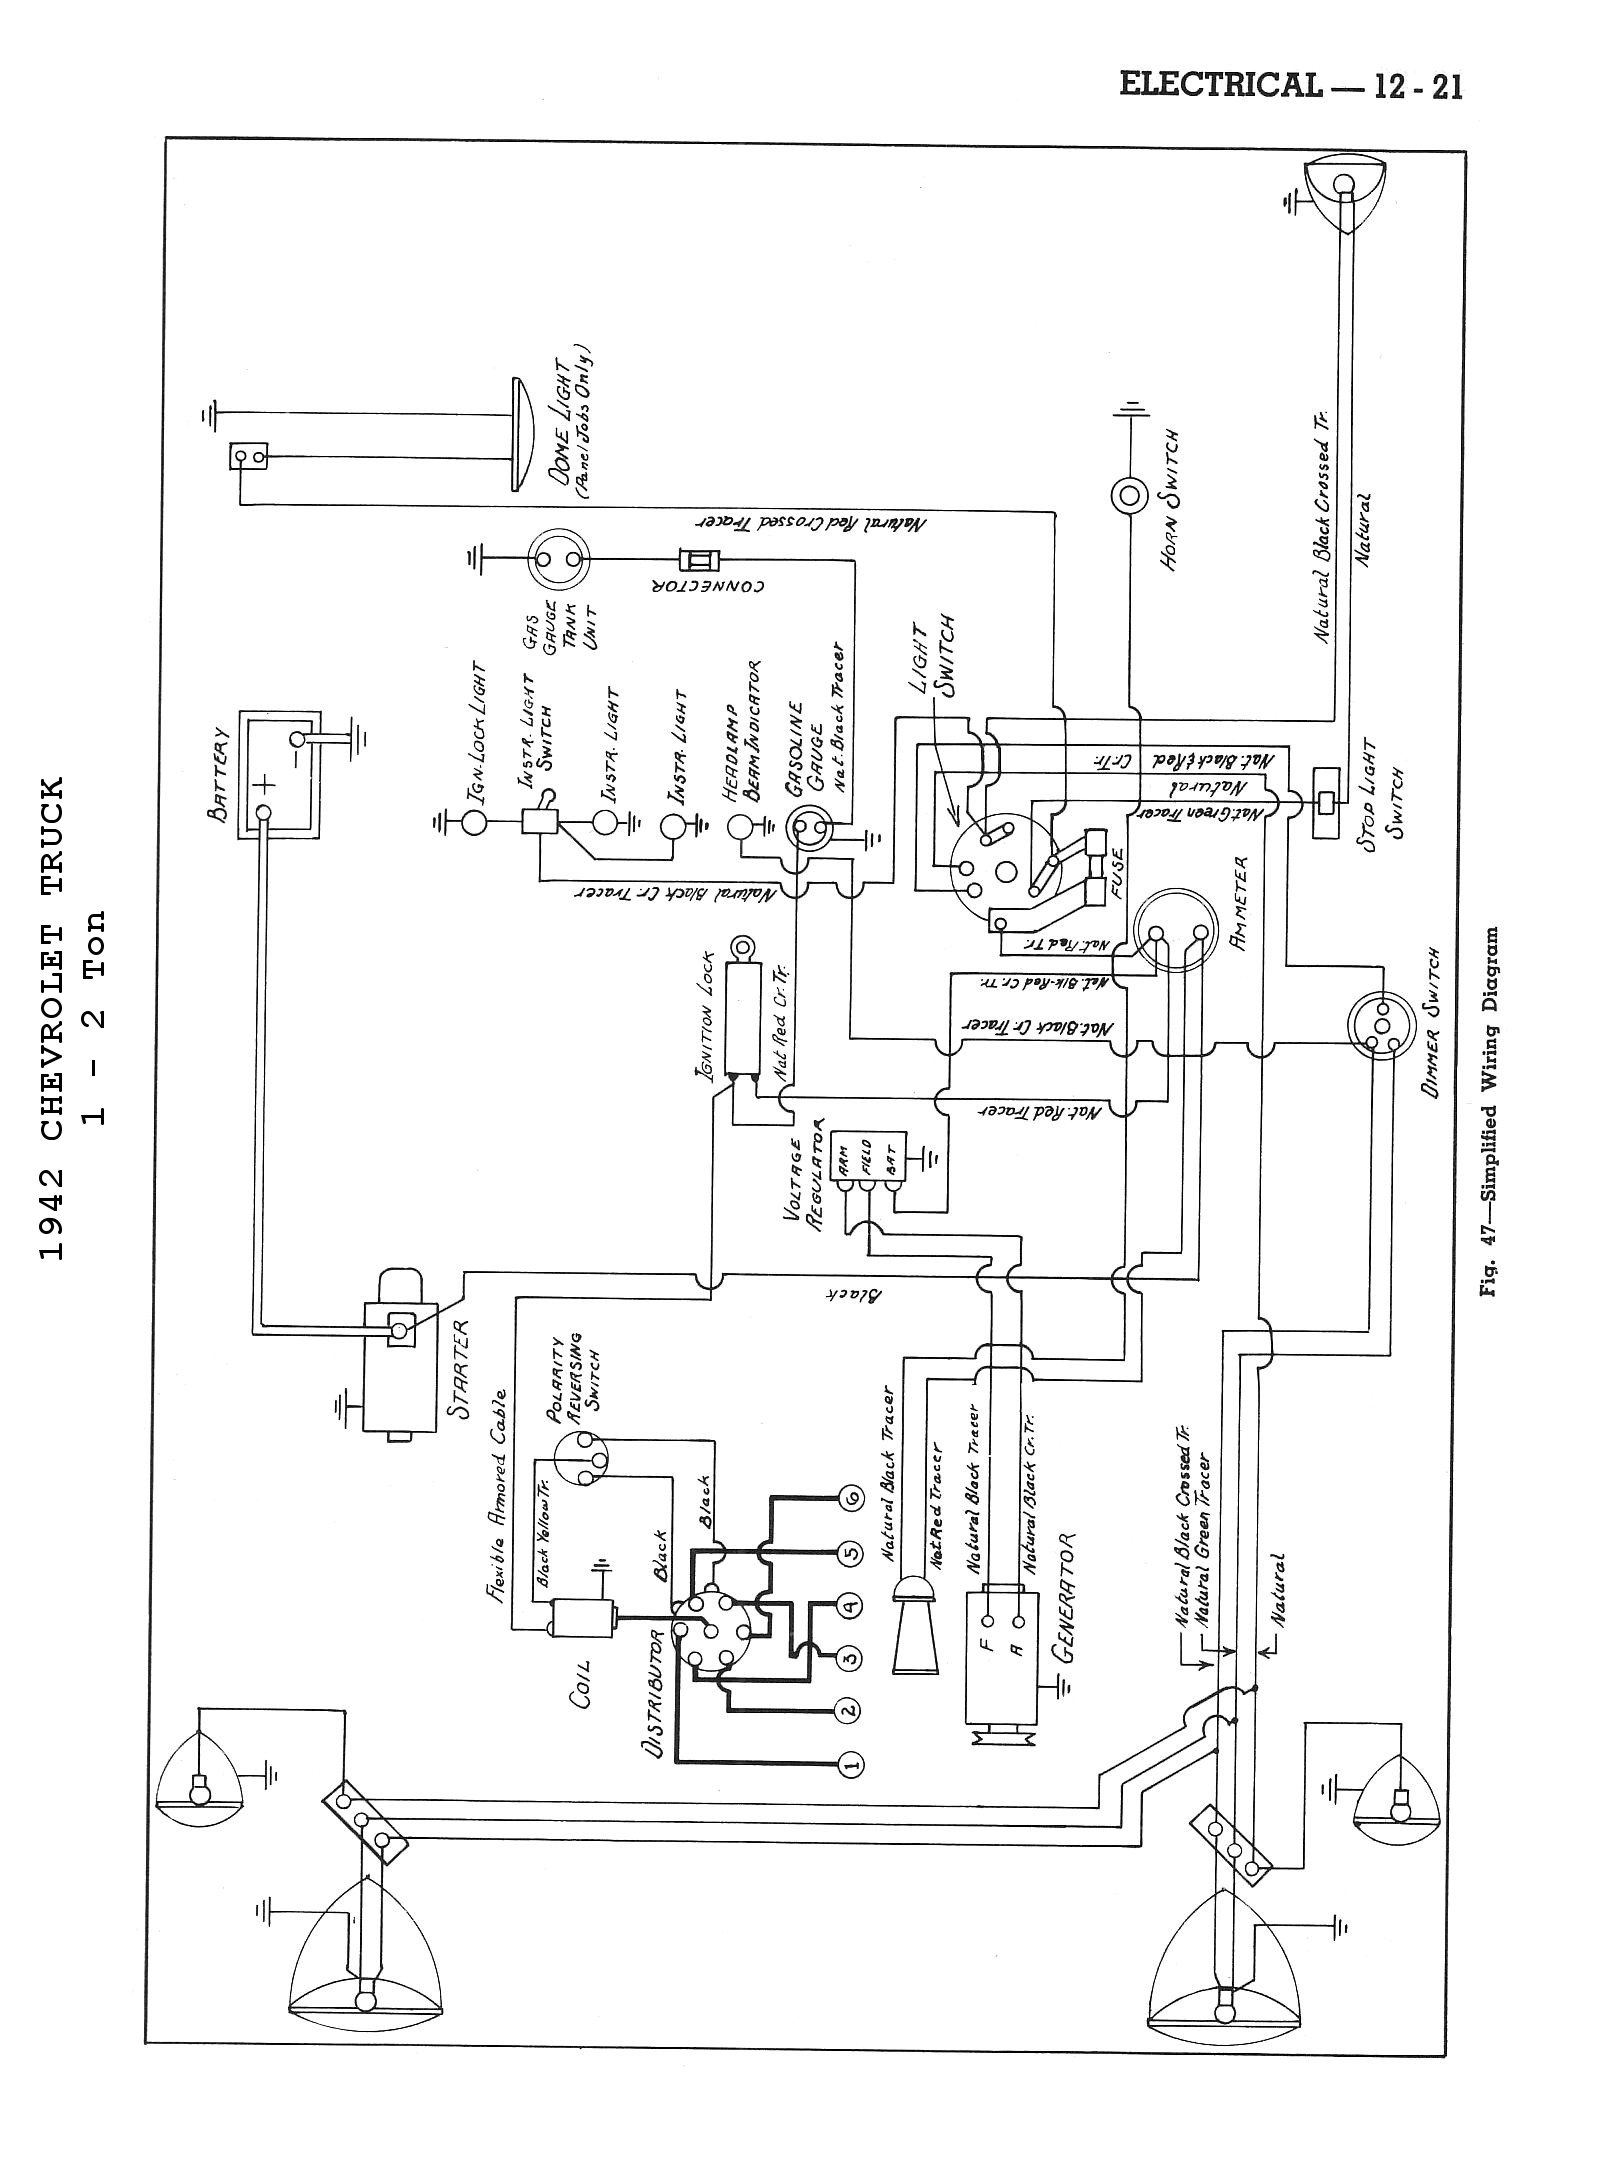 hight resolution of chevy wiring diagrams 56 chevy wiring diagram 1942 body wiring diagram 1942 4x2 truck wiring